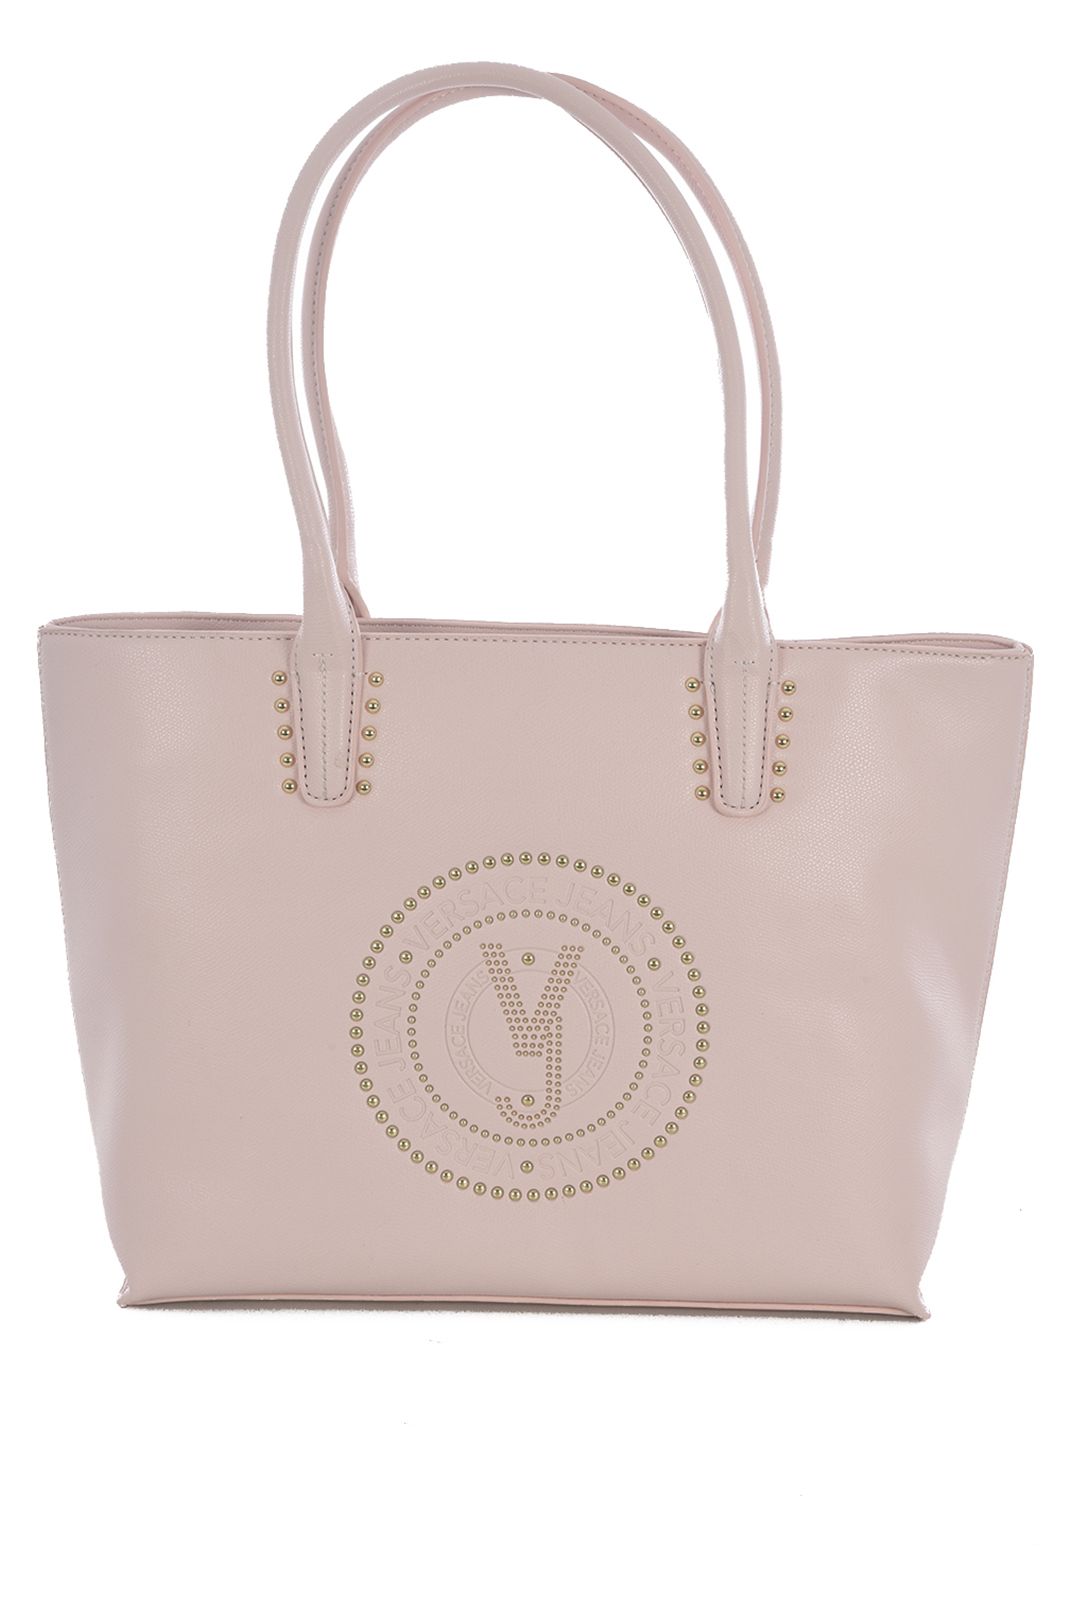 Cabas / Sacs shopping  Versace Jeans VRBBQ2 426 ROSE